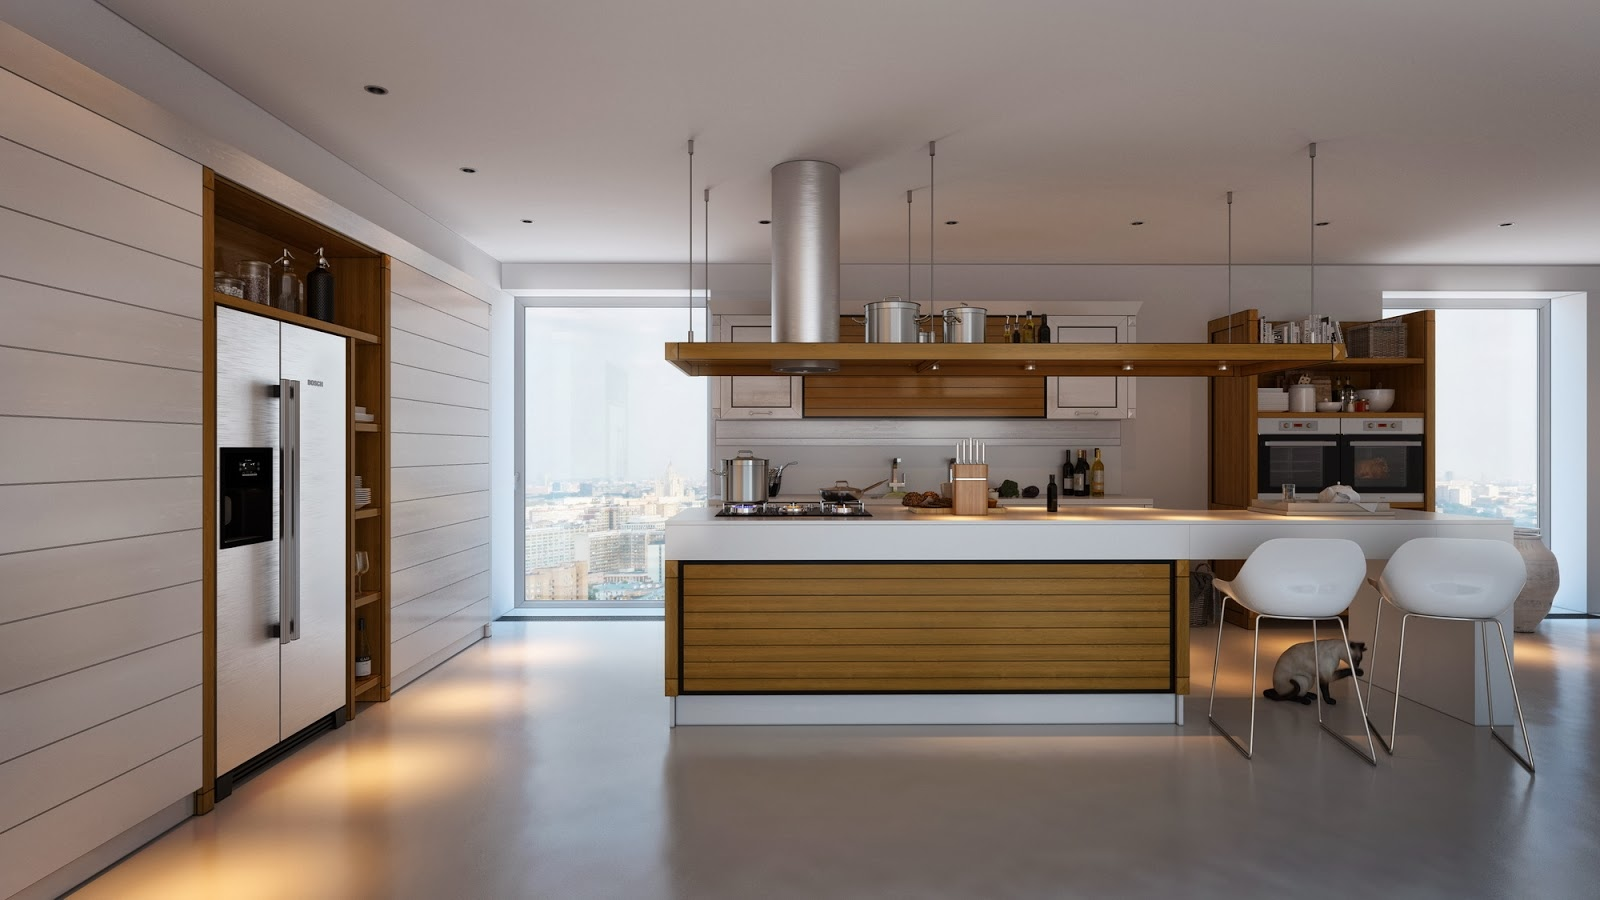 2 Minimalist Kitchen Design That Will Stunning You By Artem Evstigneev Roohome Designs Plans